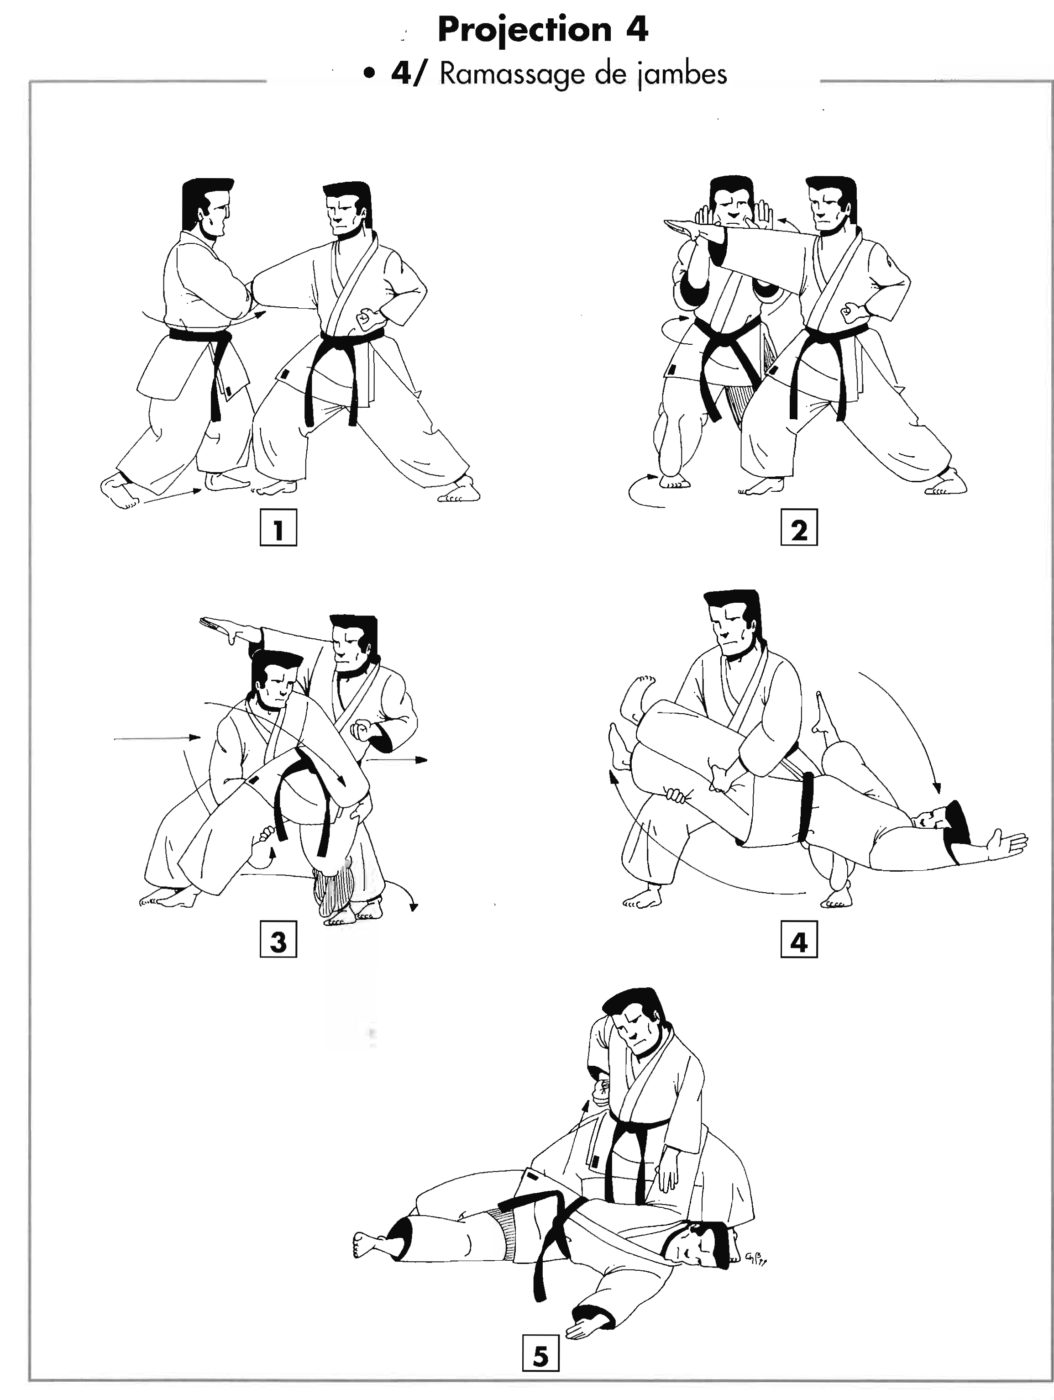 Projection : waki otoshi – Ramassage de jambe